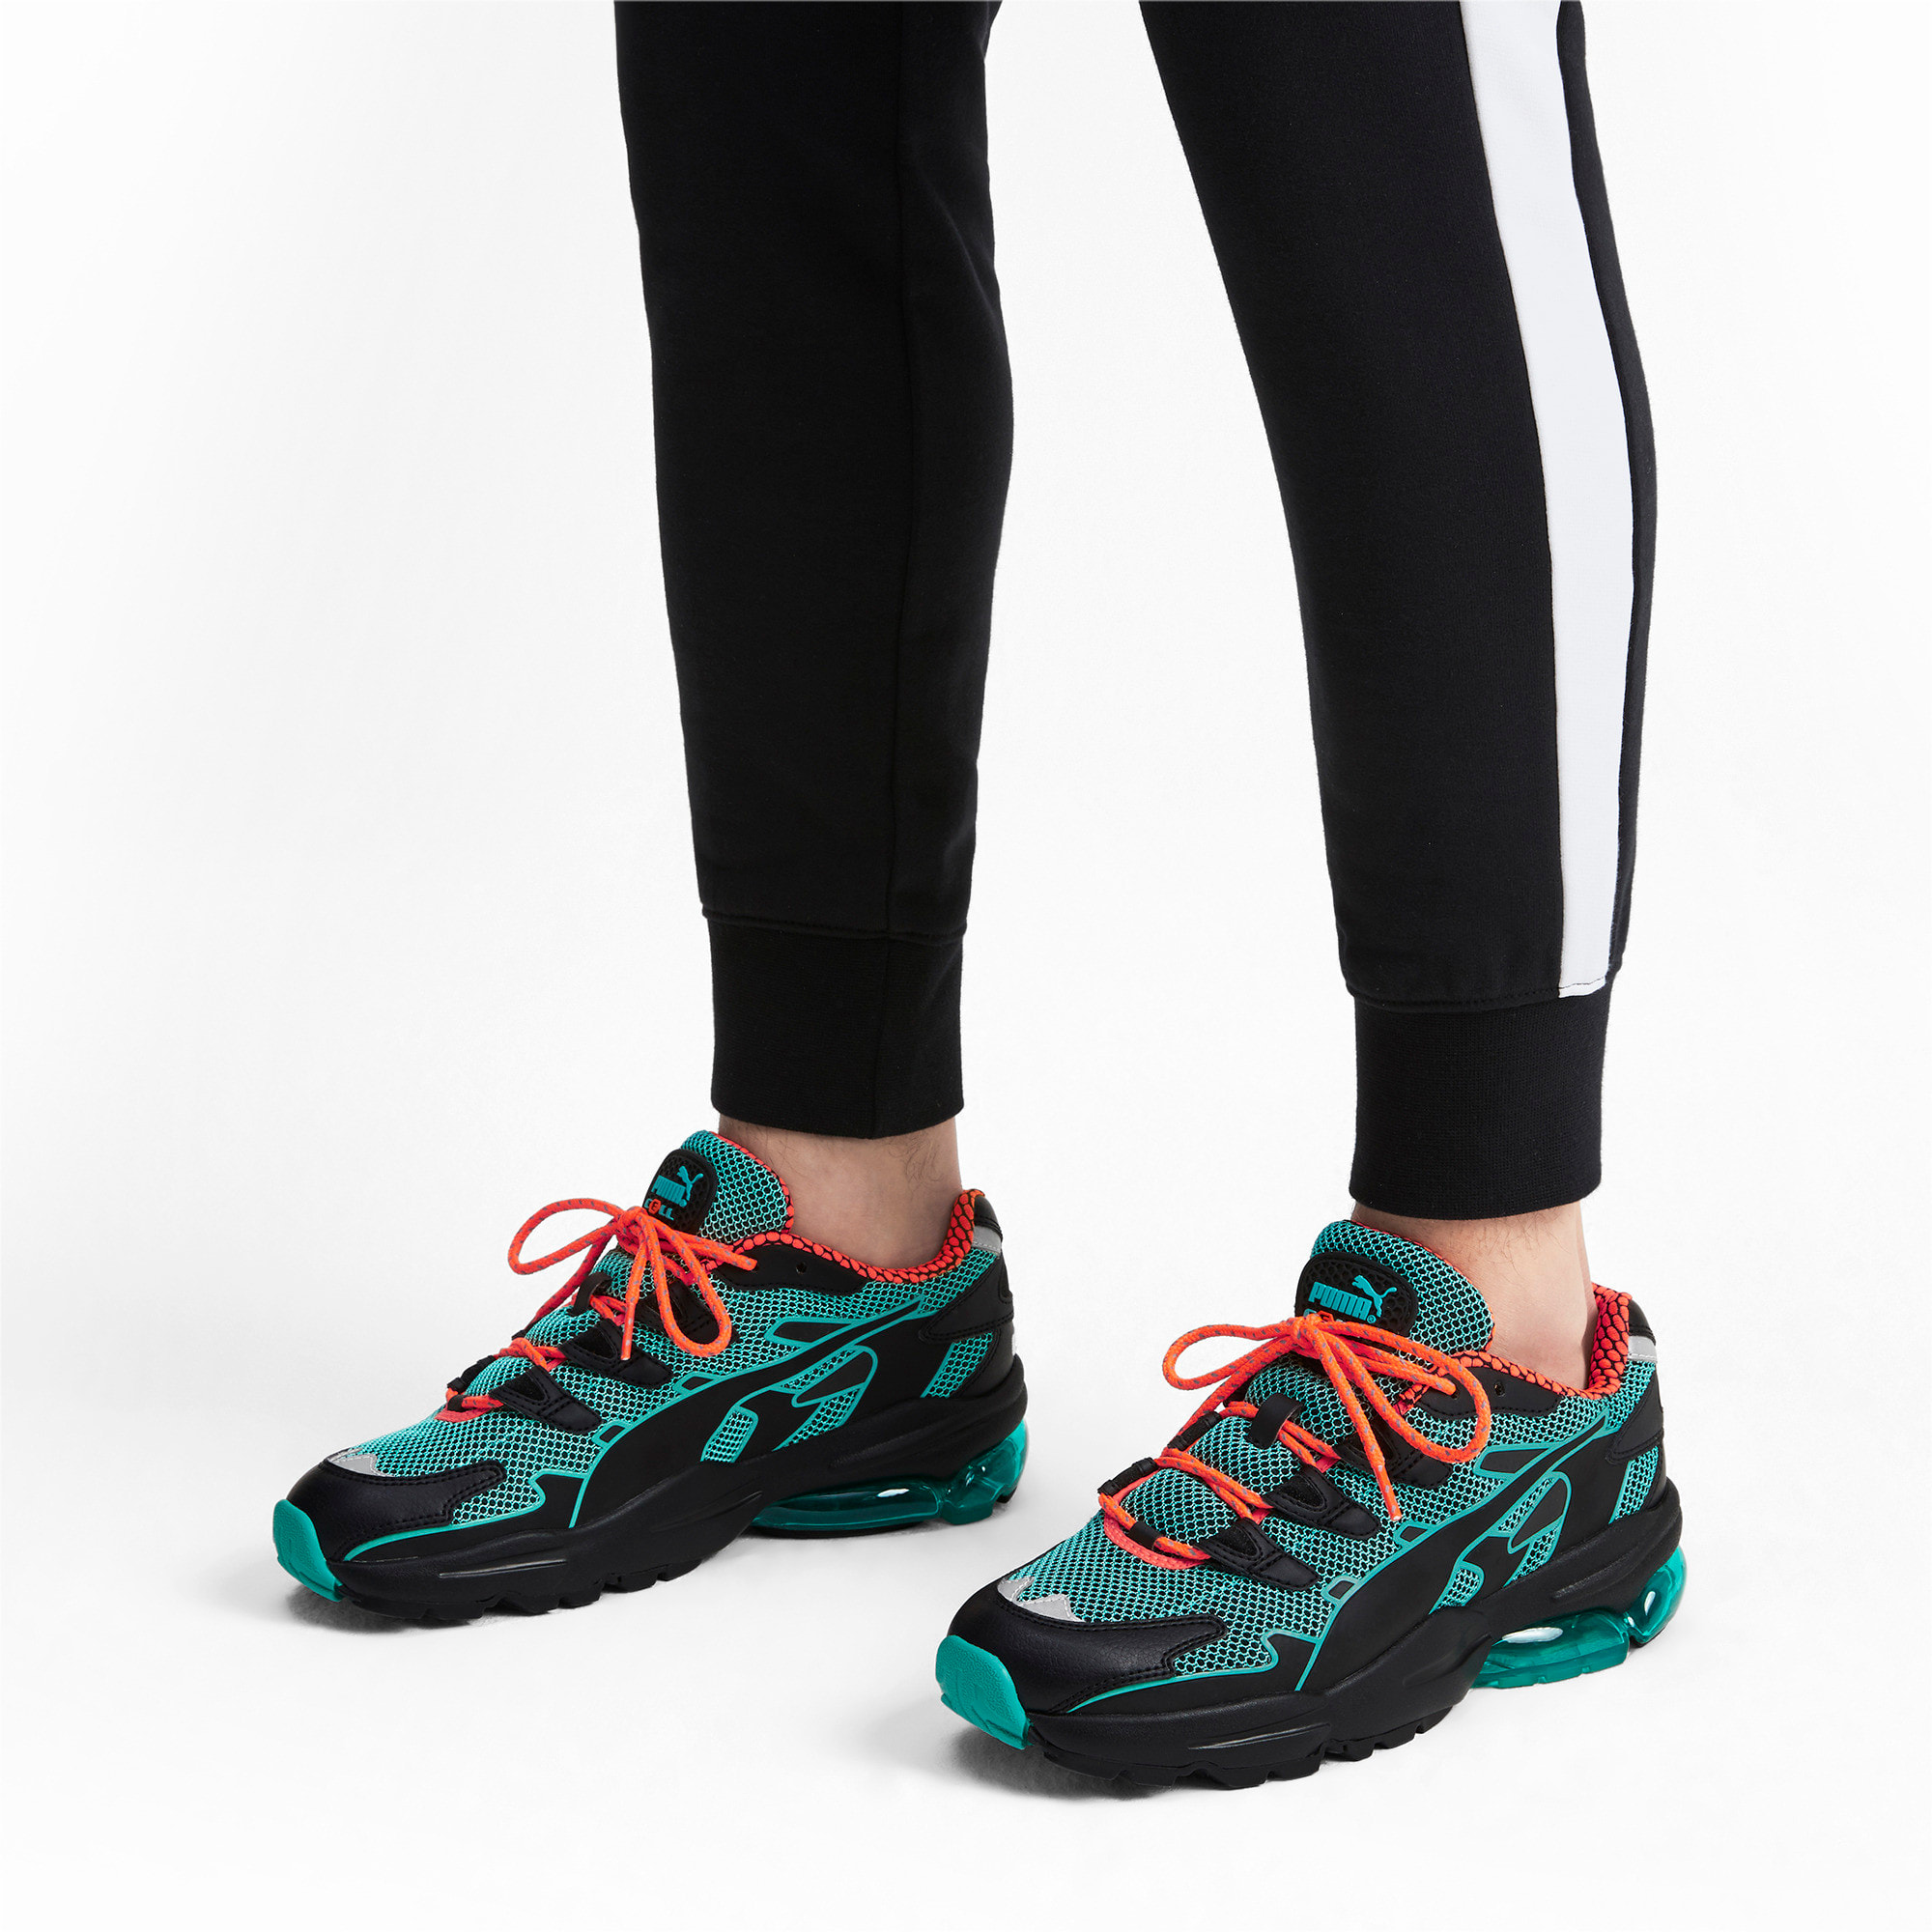 Thumbnail 2 of CELL Alien Kotto Trainers, Puma Black-Blue Turquoise, medium